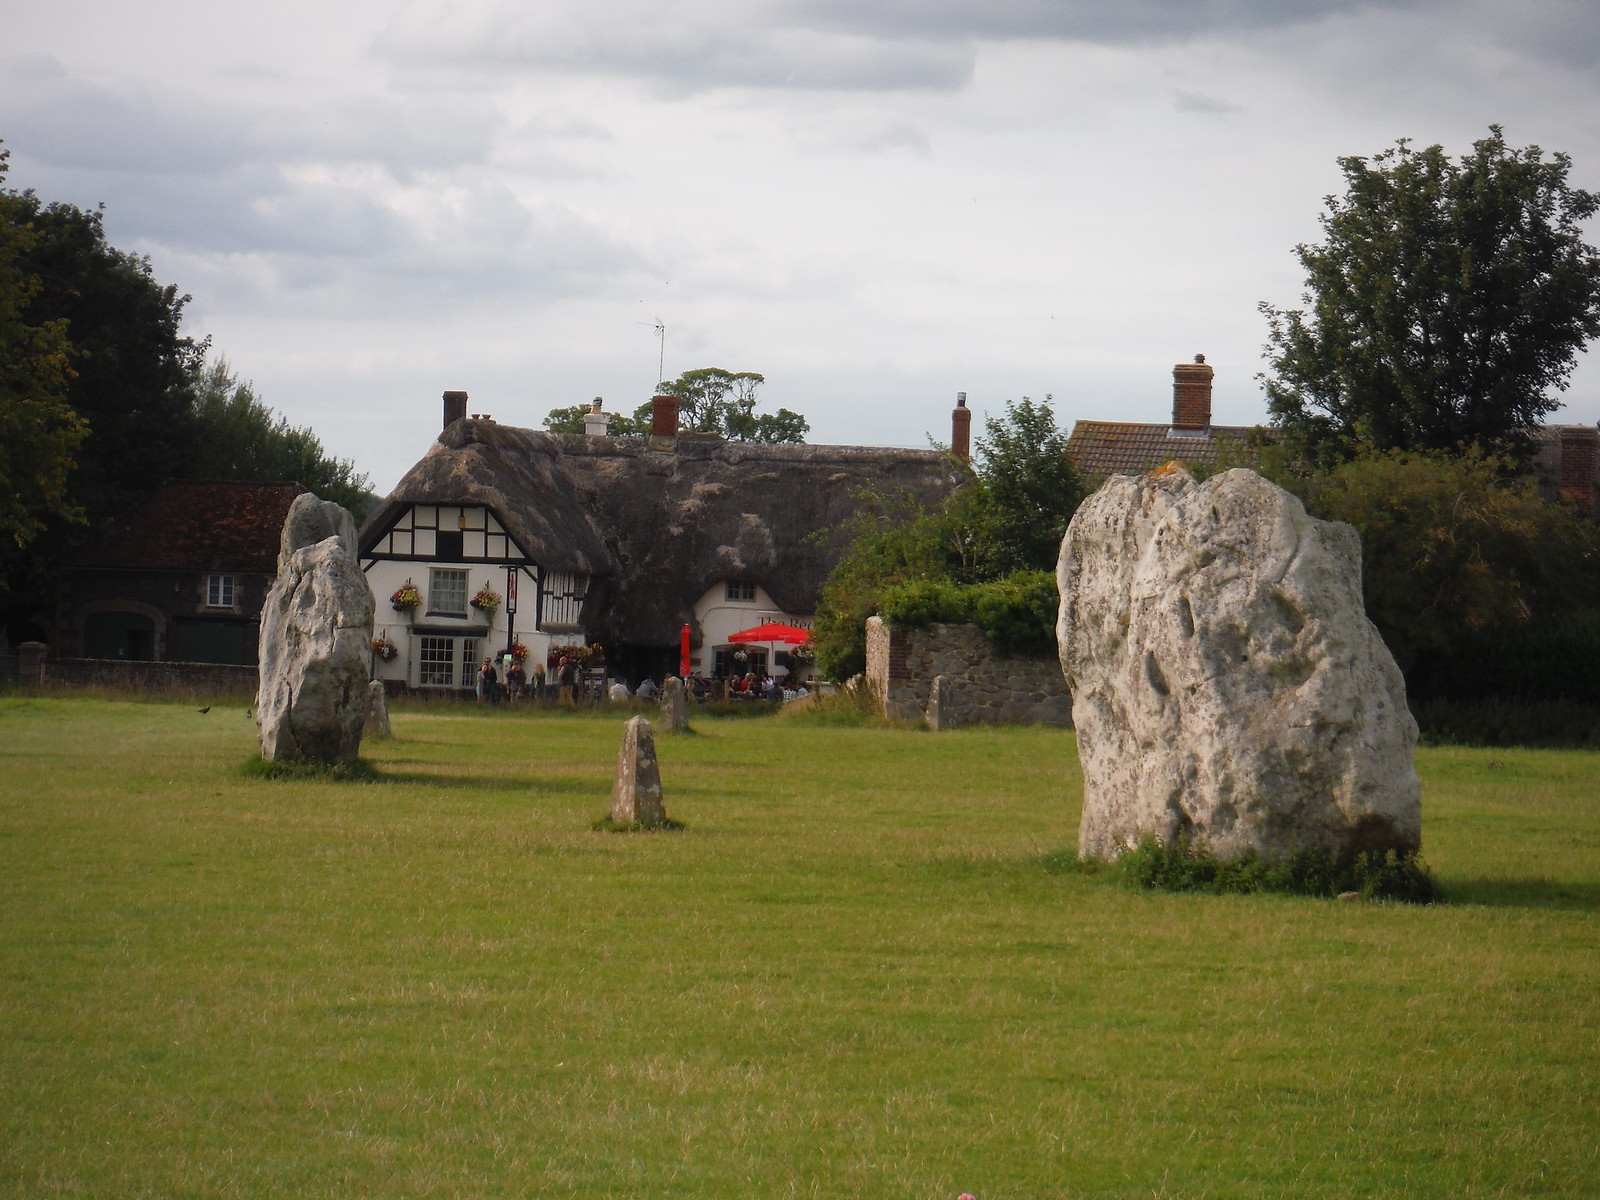 Avebury Standing Stones, and The Red Lion Pub SWC Walk 255 Pewsey or Marlborough Circular via Avebury